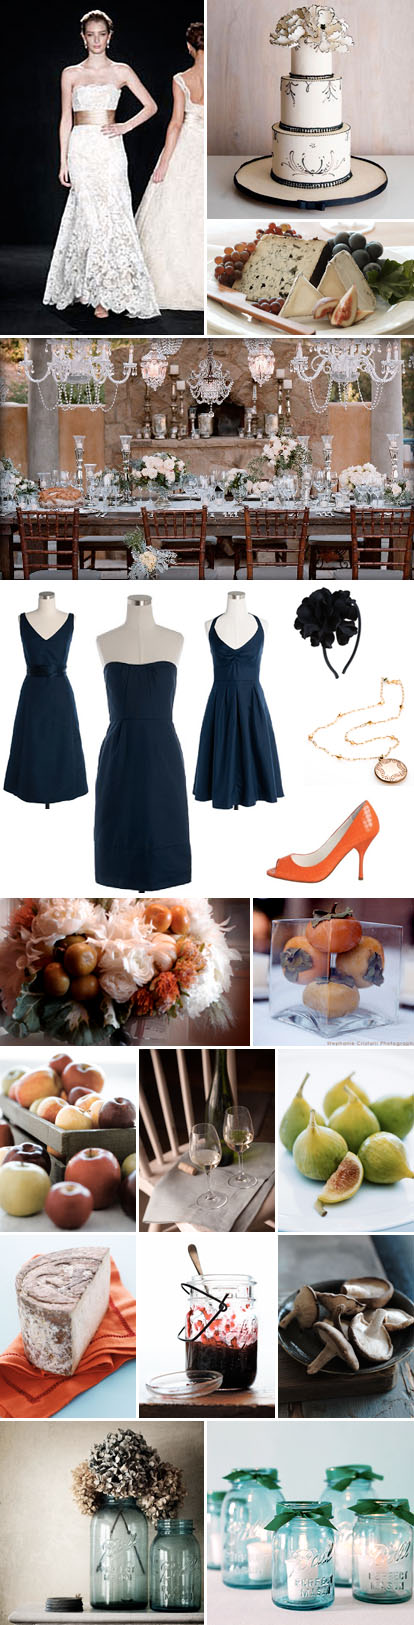 Navy and cream wedding color palette, rustic and elegant fall wedding inspiration board